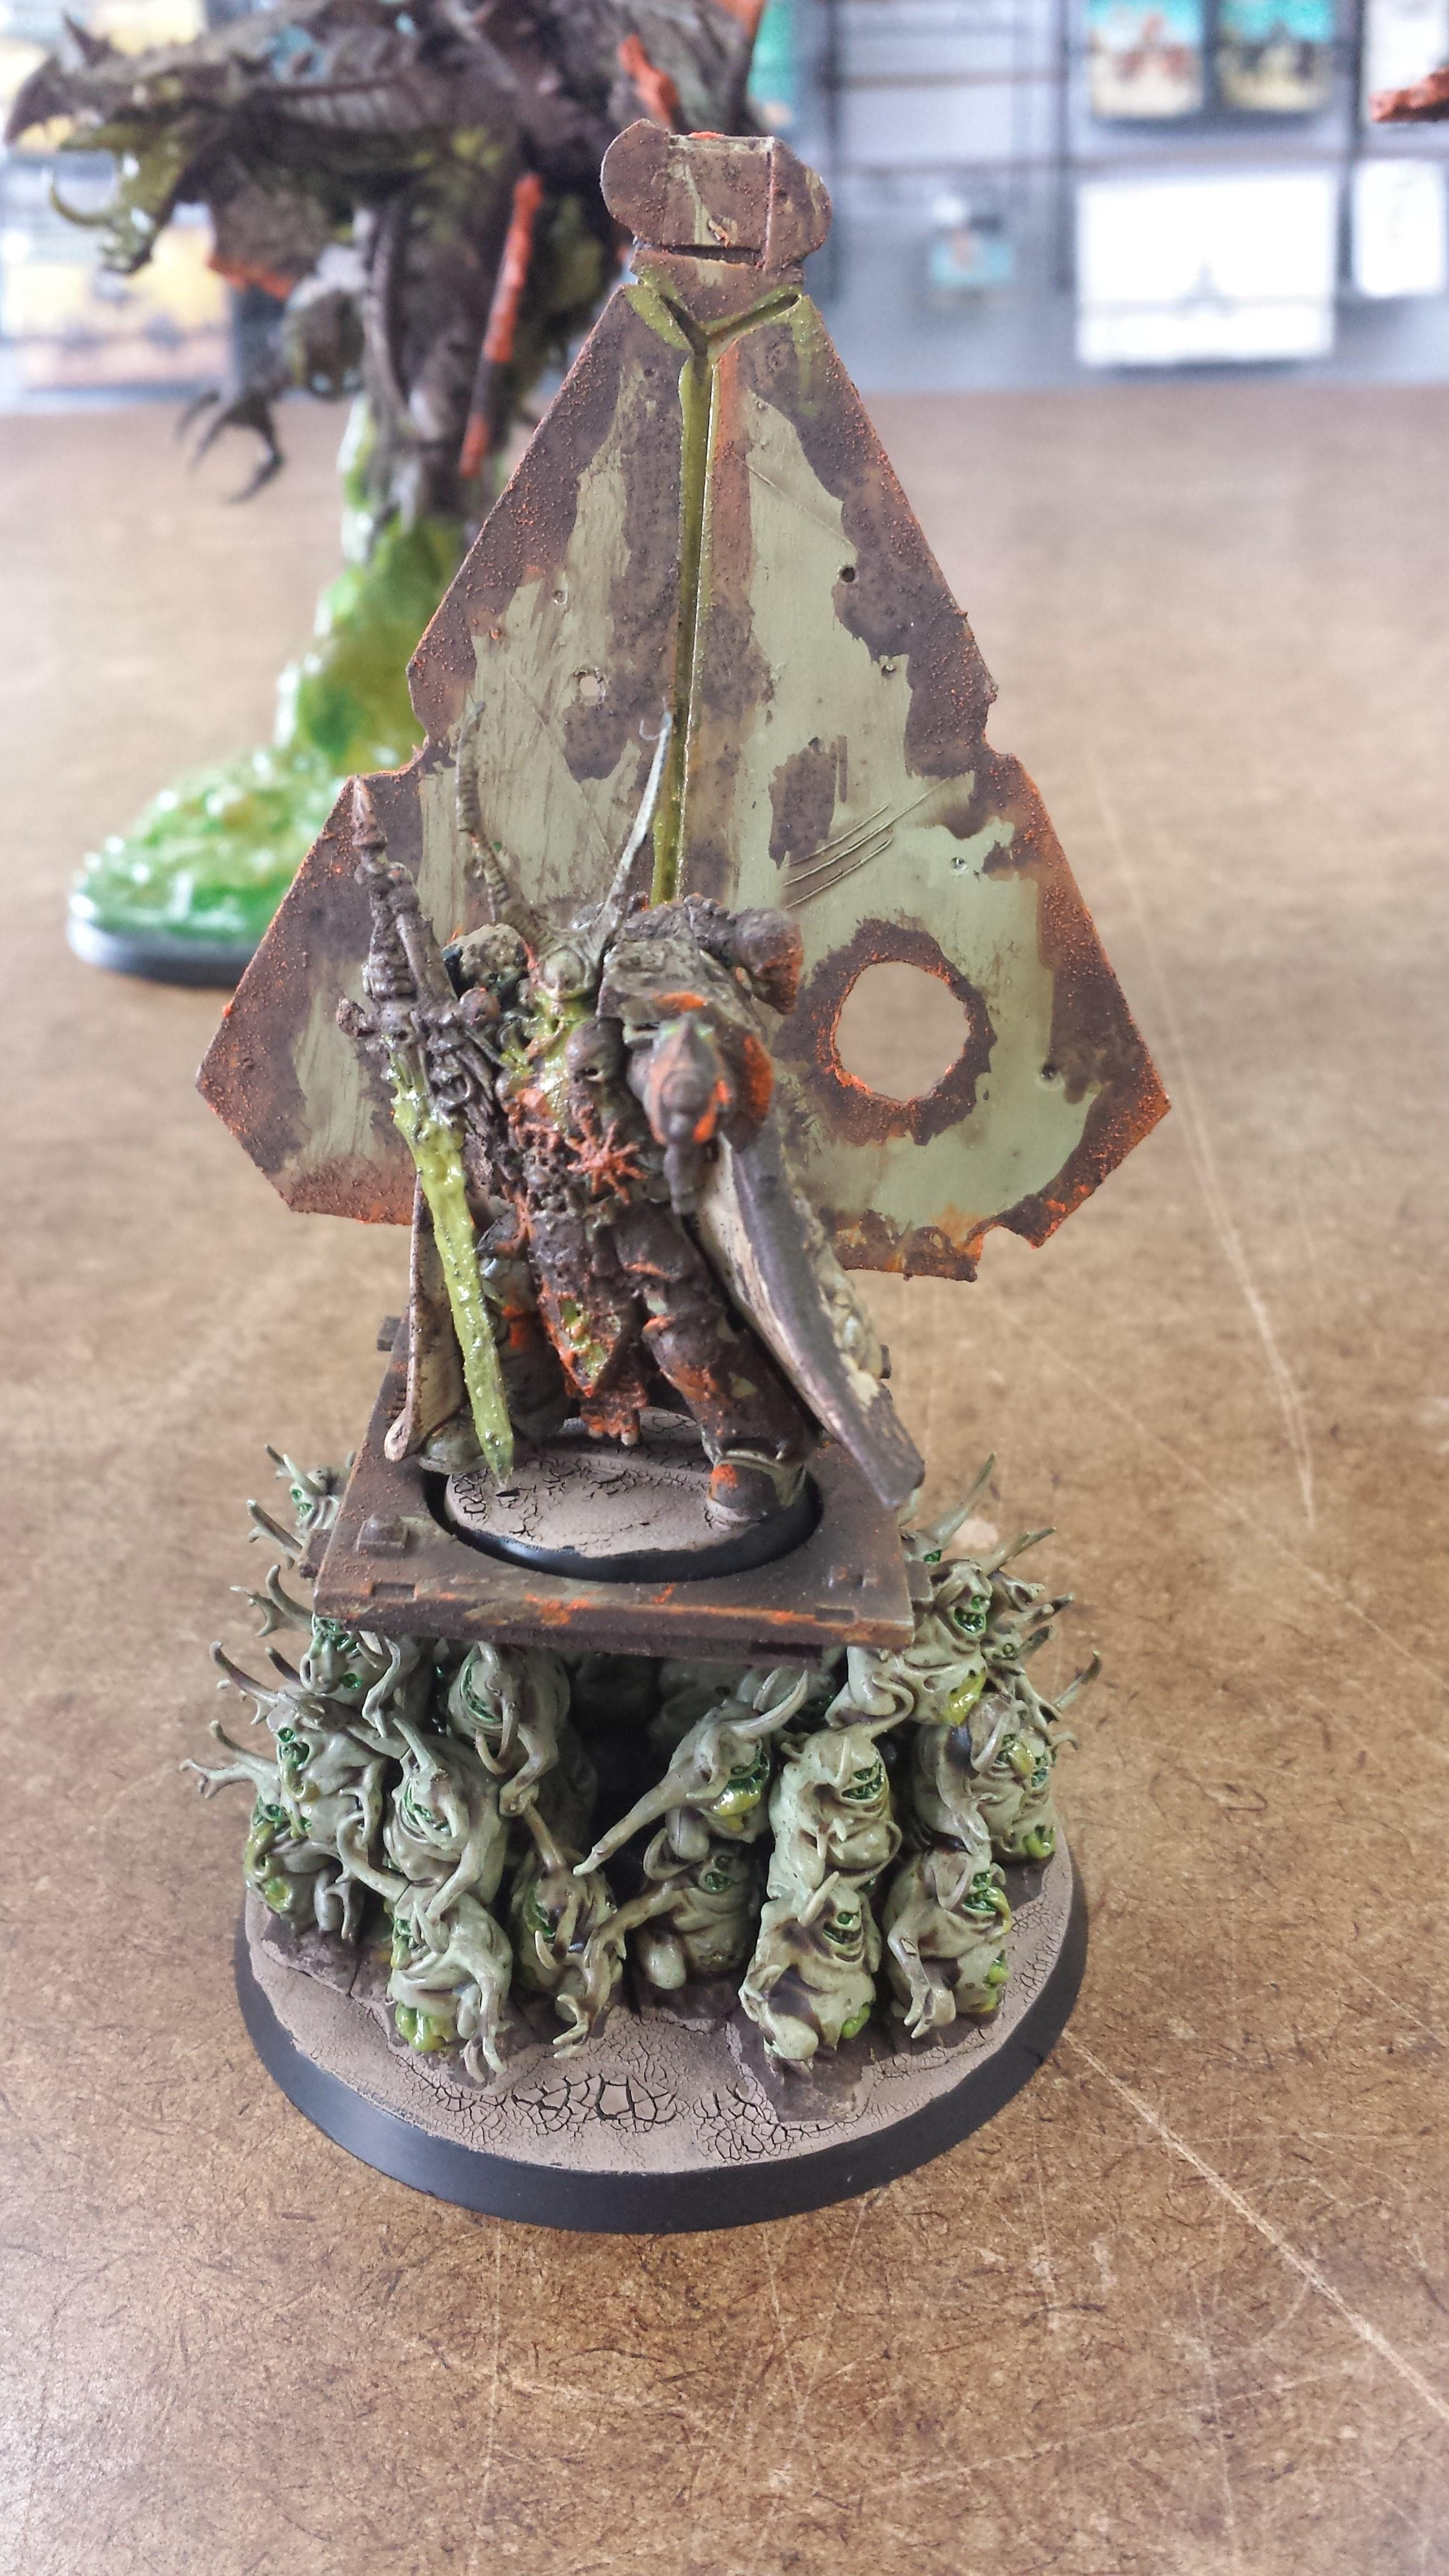 Chaos, Chaos Lord, Chaos Space Marines, Goo, Nurgle, Palanquin, Palanquin Of Nurgle, Plague Lord, Plague Marines, Plauge, Rot, Warhammer 40,000, Zombie